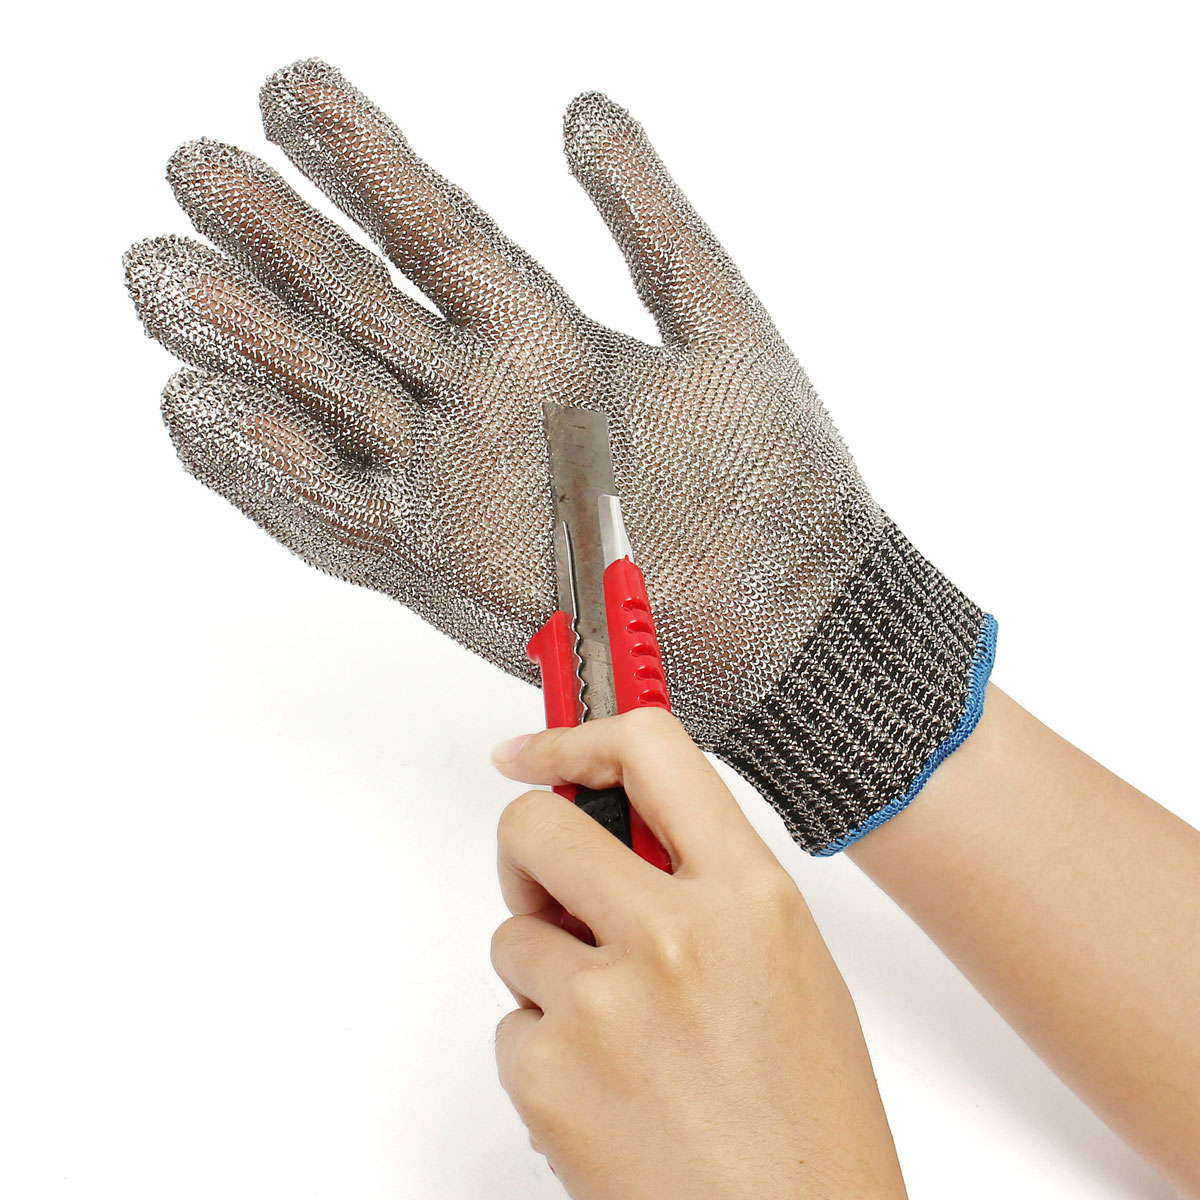 Safety Cut Proof Stab Resistant Stainless Steel Metal Mesh Butcher Gloves top quality 304l stainless steel mesh knife cut resistant chain mail protective glove for kitchen butcher working safety